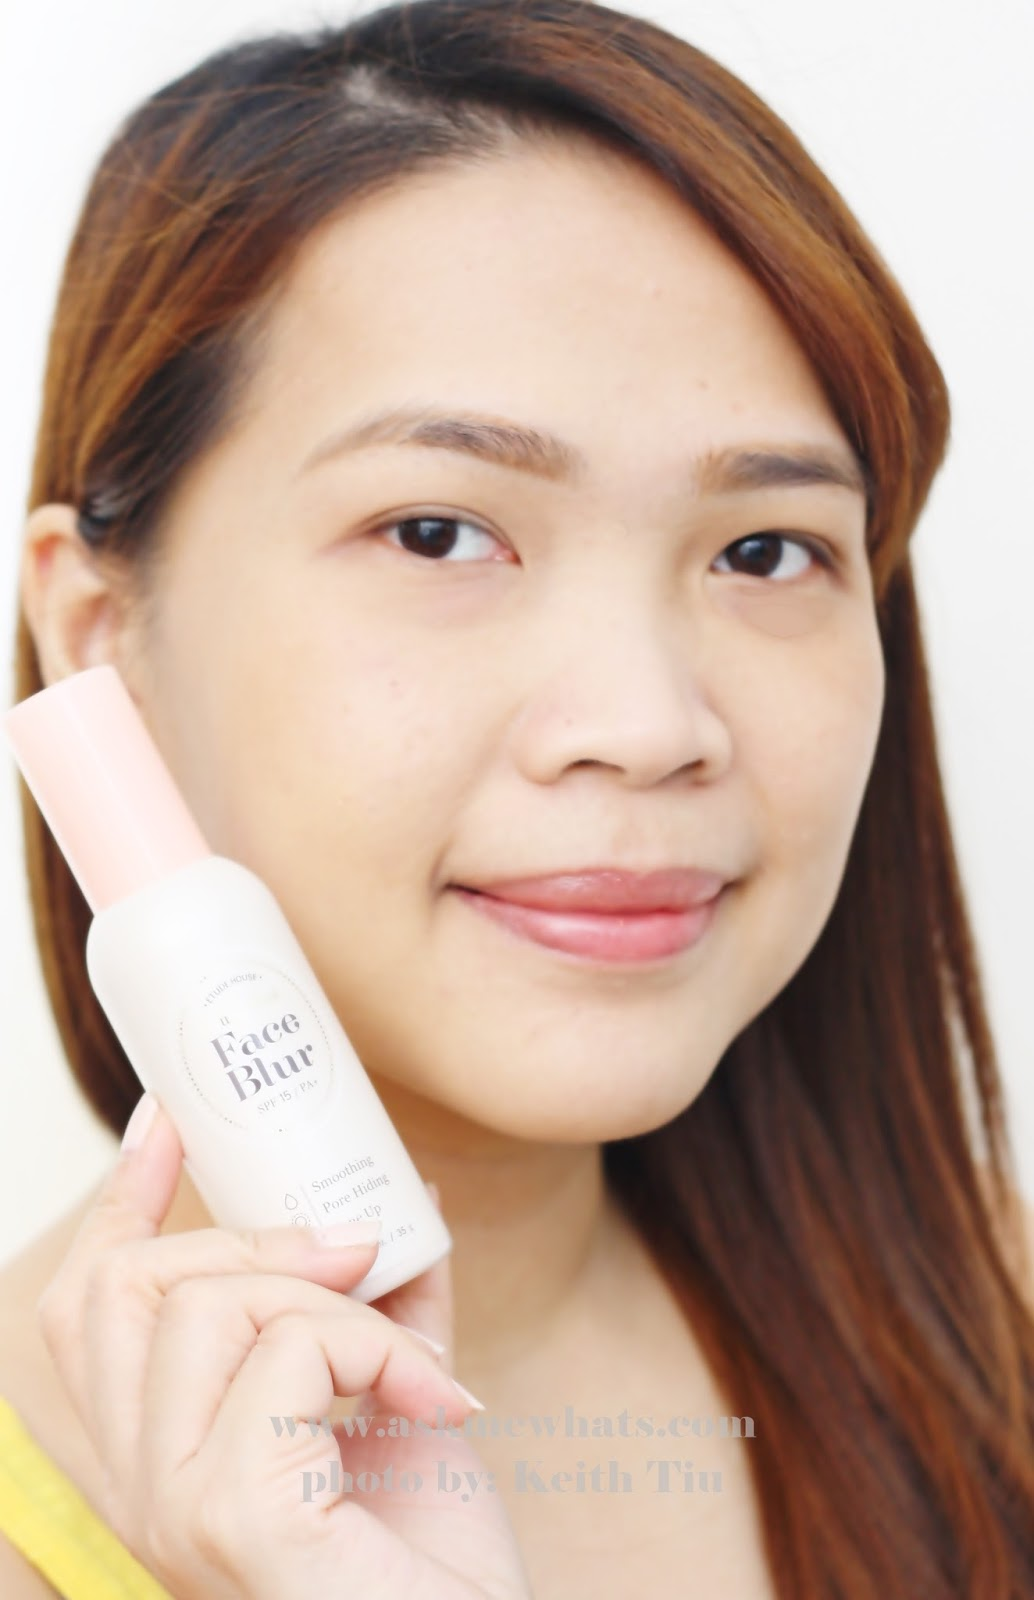 a photo of Etude House Beauty Shot Face Blur